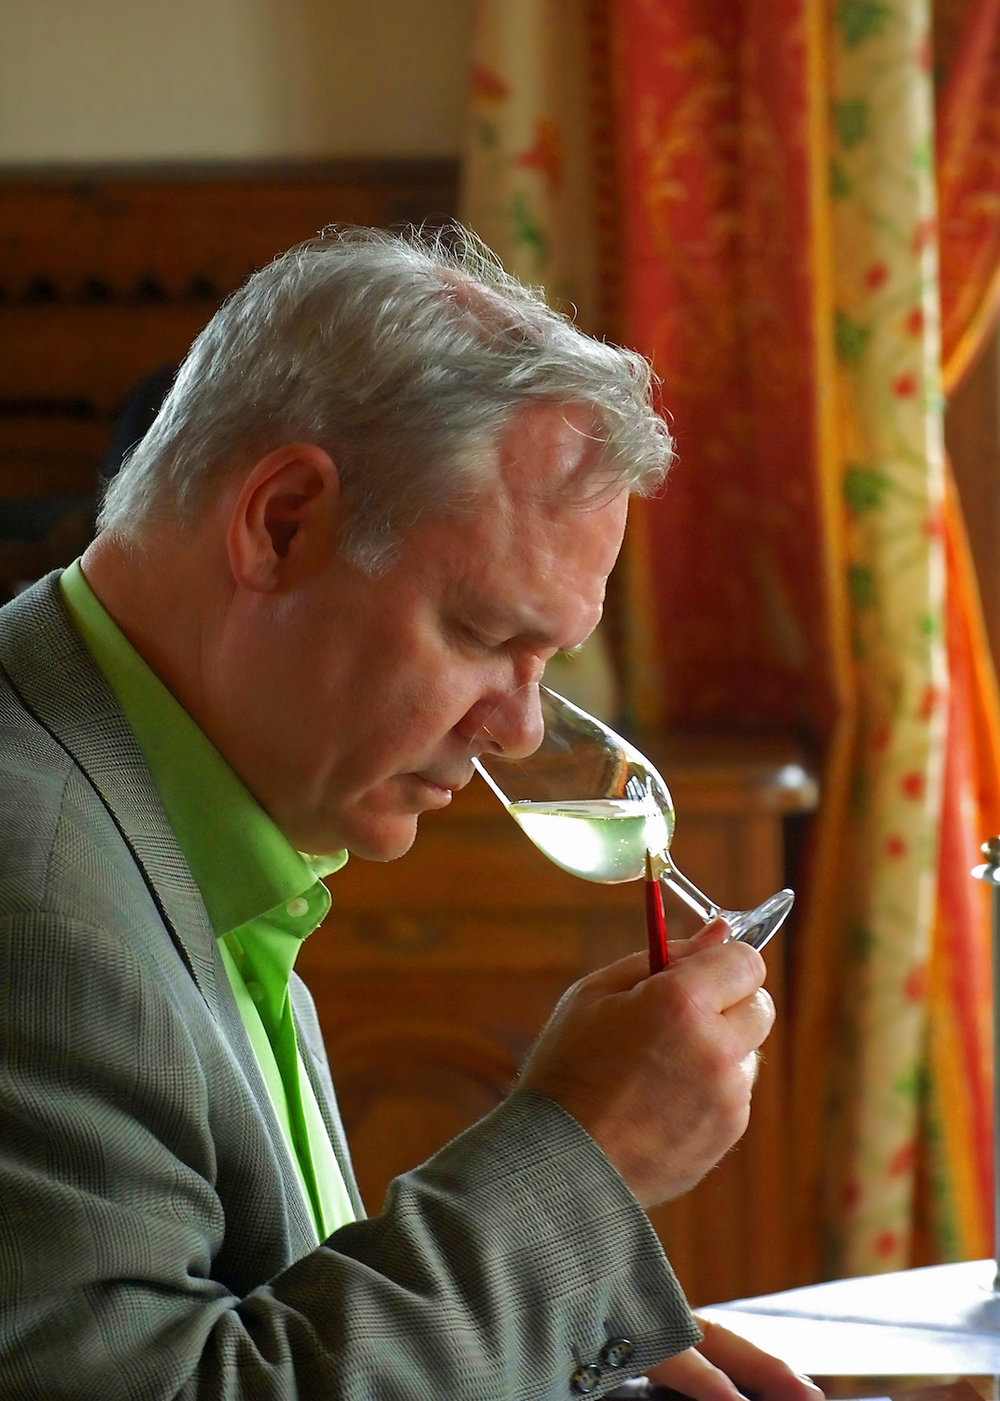 There is more to tasting wine than putting your nose in the glass!